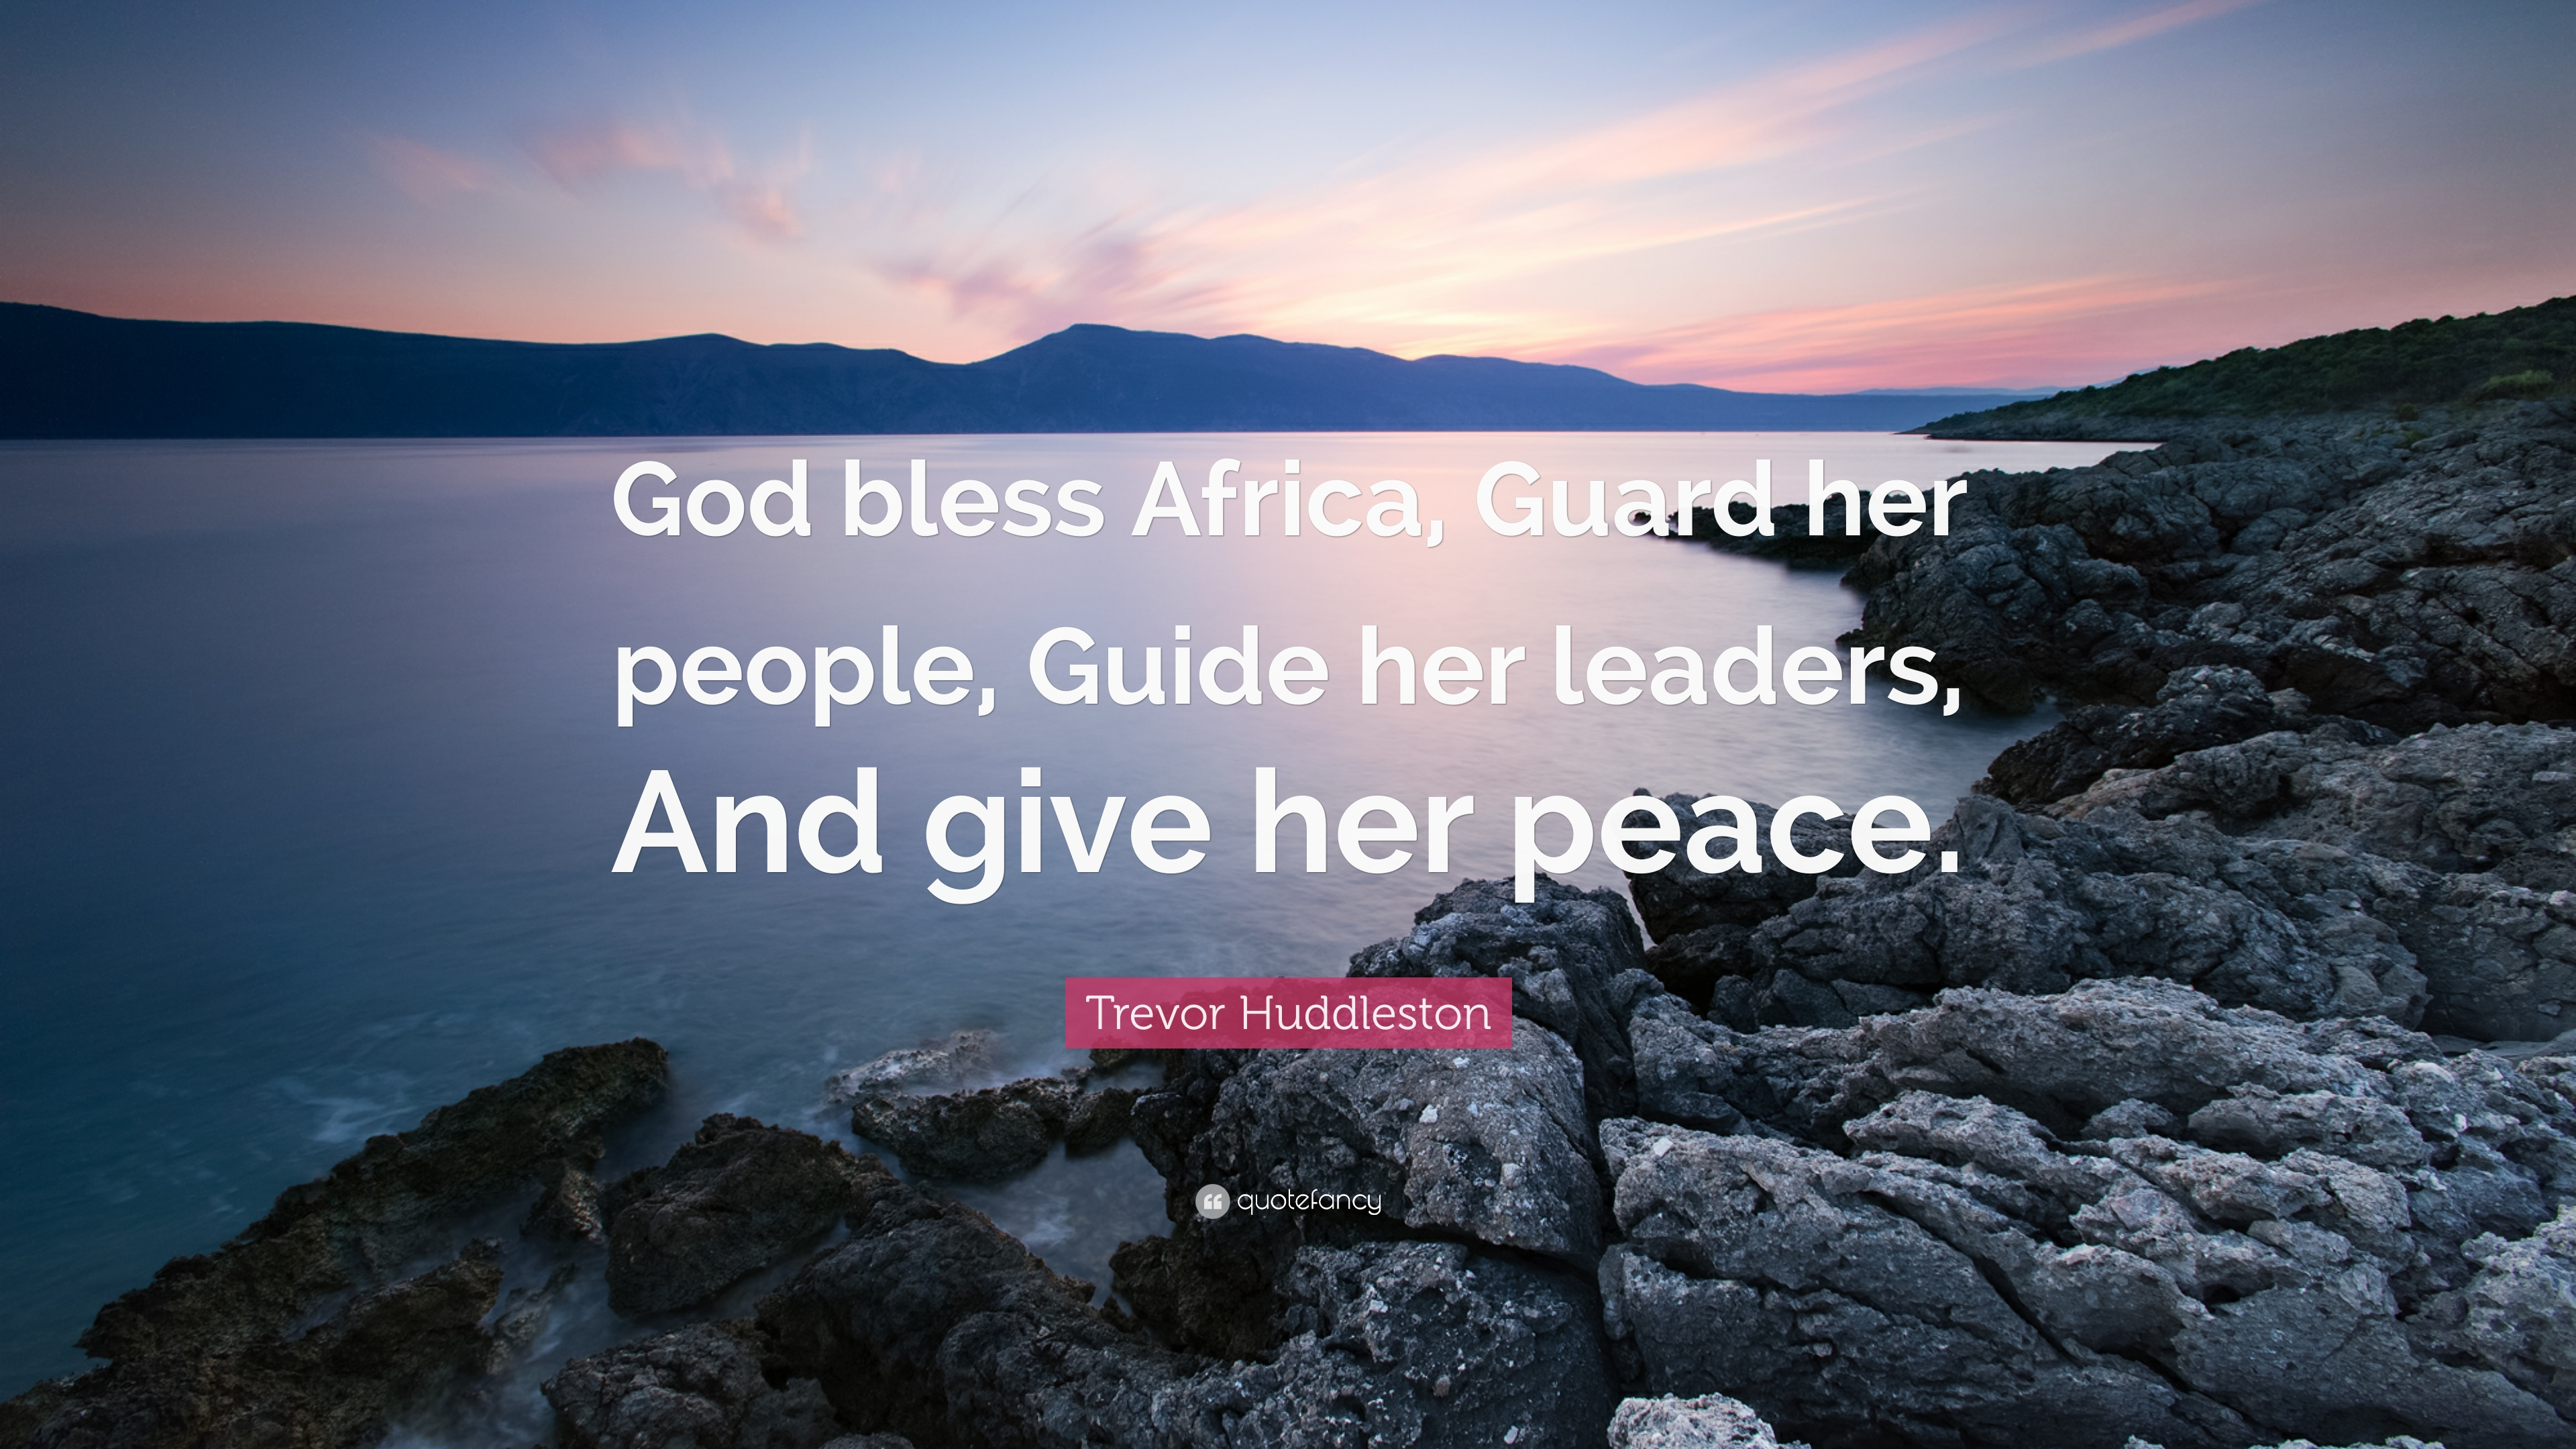 Trevor Huddleston Quote God Bless Africa Guard Her People Guide